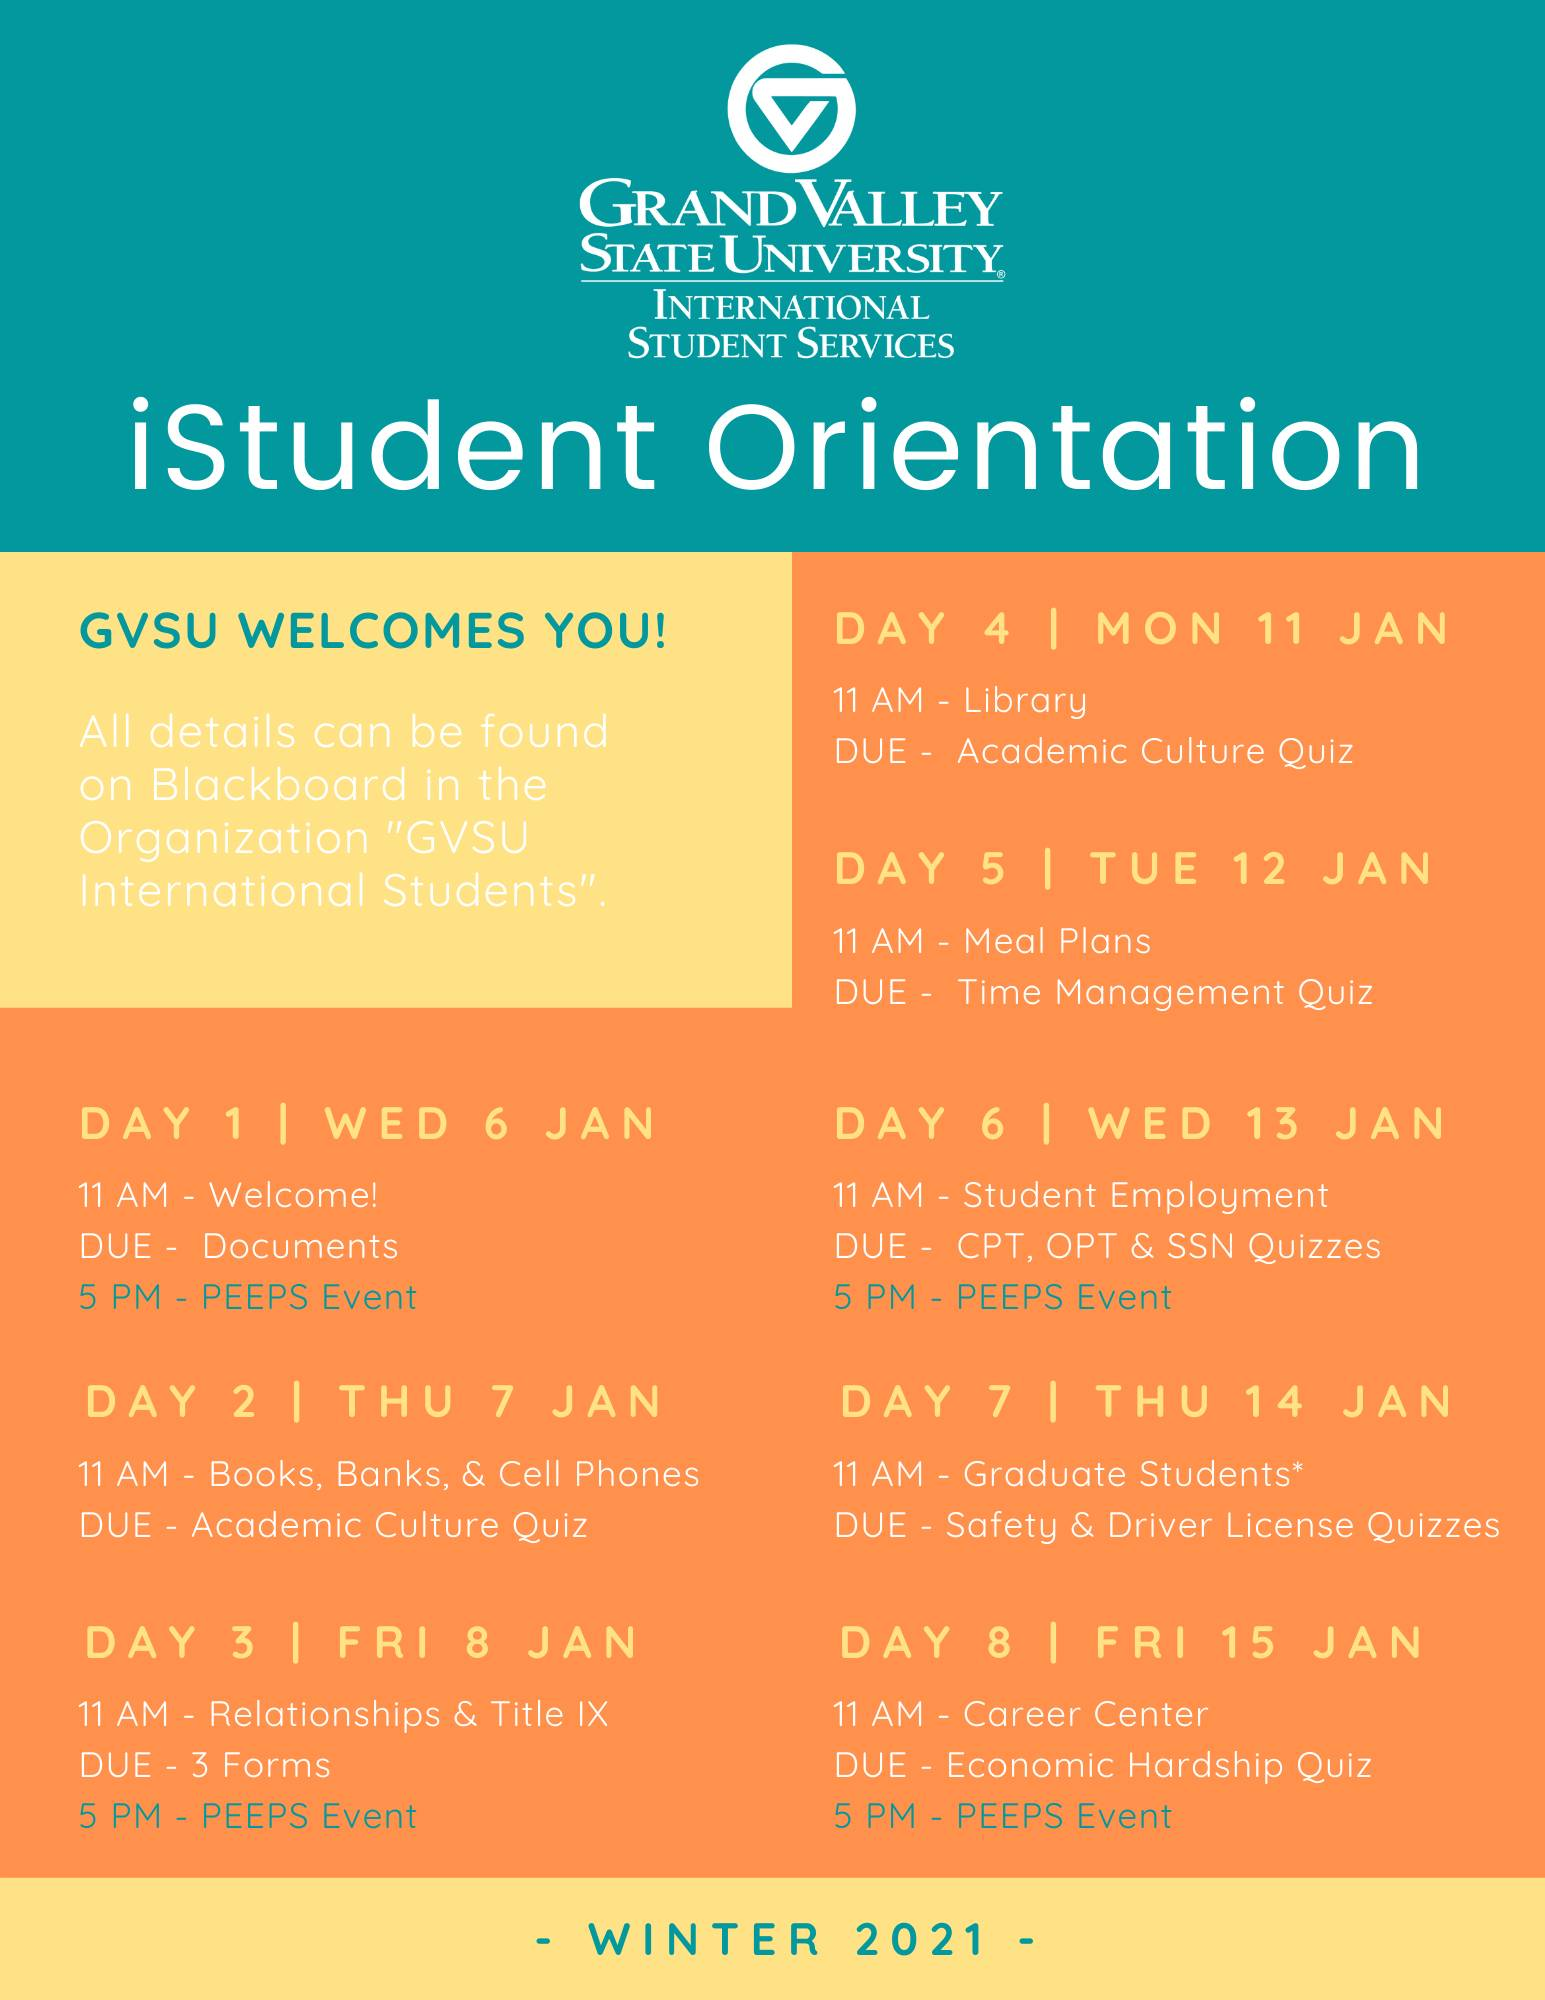 Winter 2021 Orientation Schedule